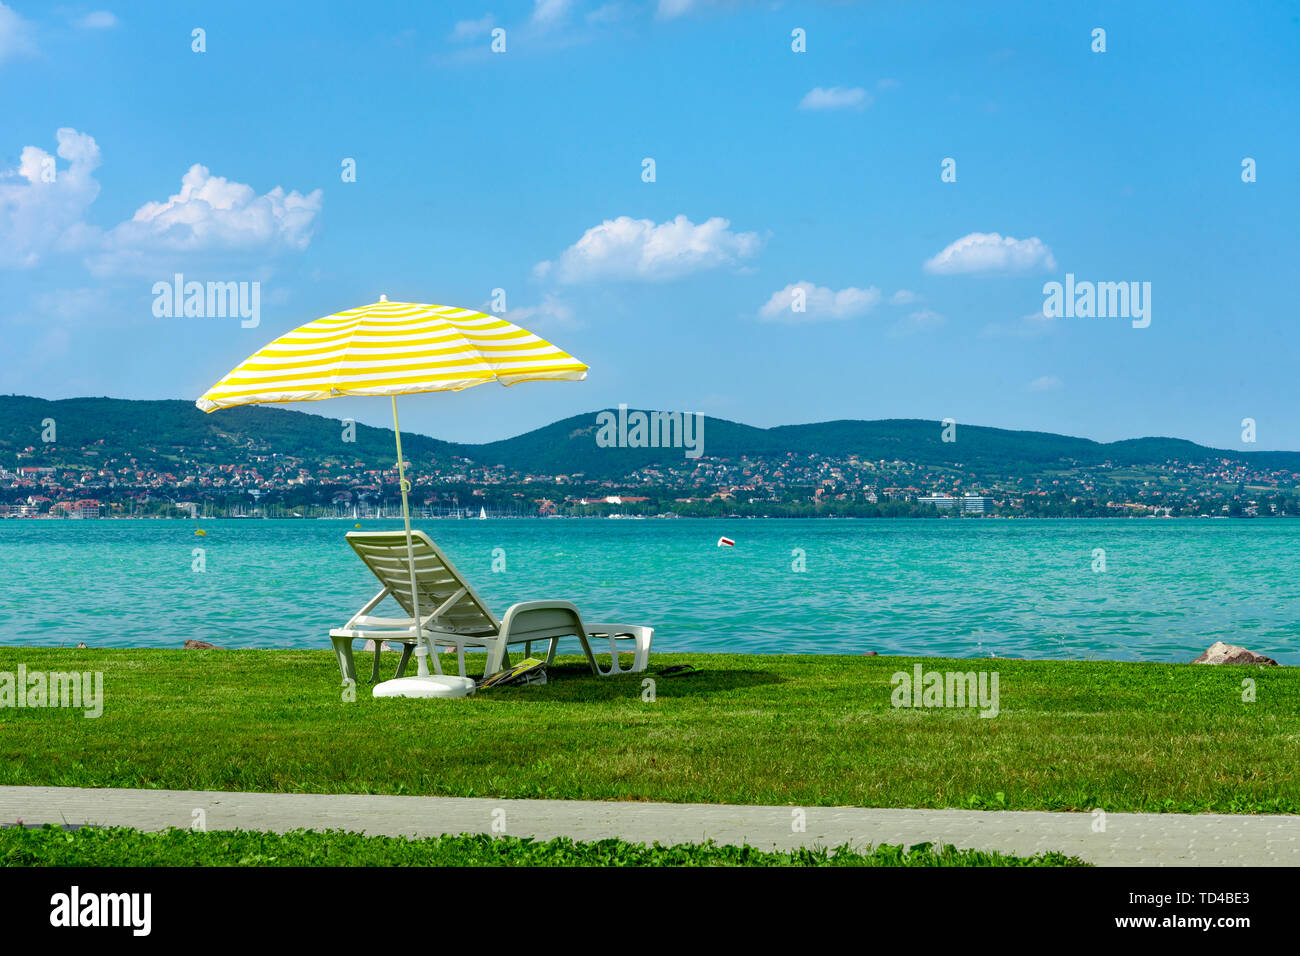 Stylish lounger plastic sunbed with yellow stripes sunshade beach umbrella on the green grass on beach at summer under open sky. Sunbed intended for - Stock Image